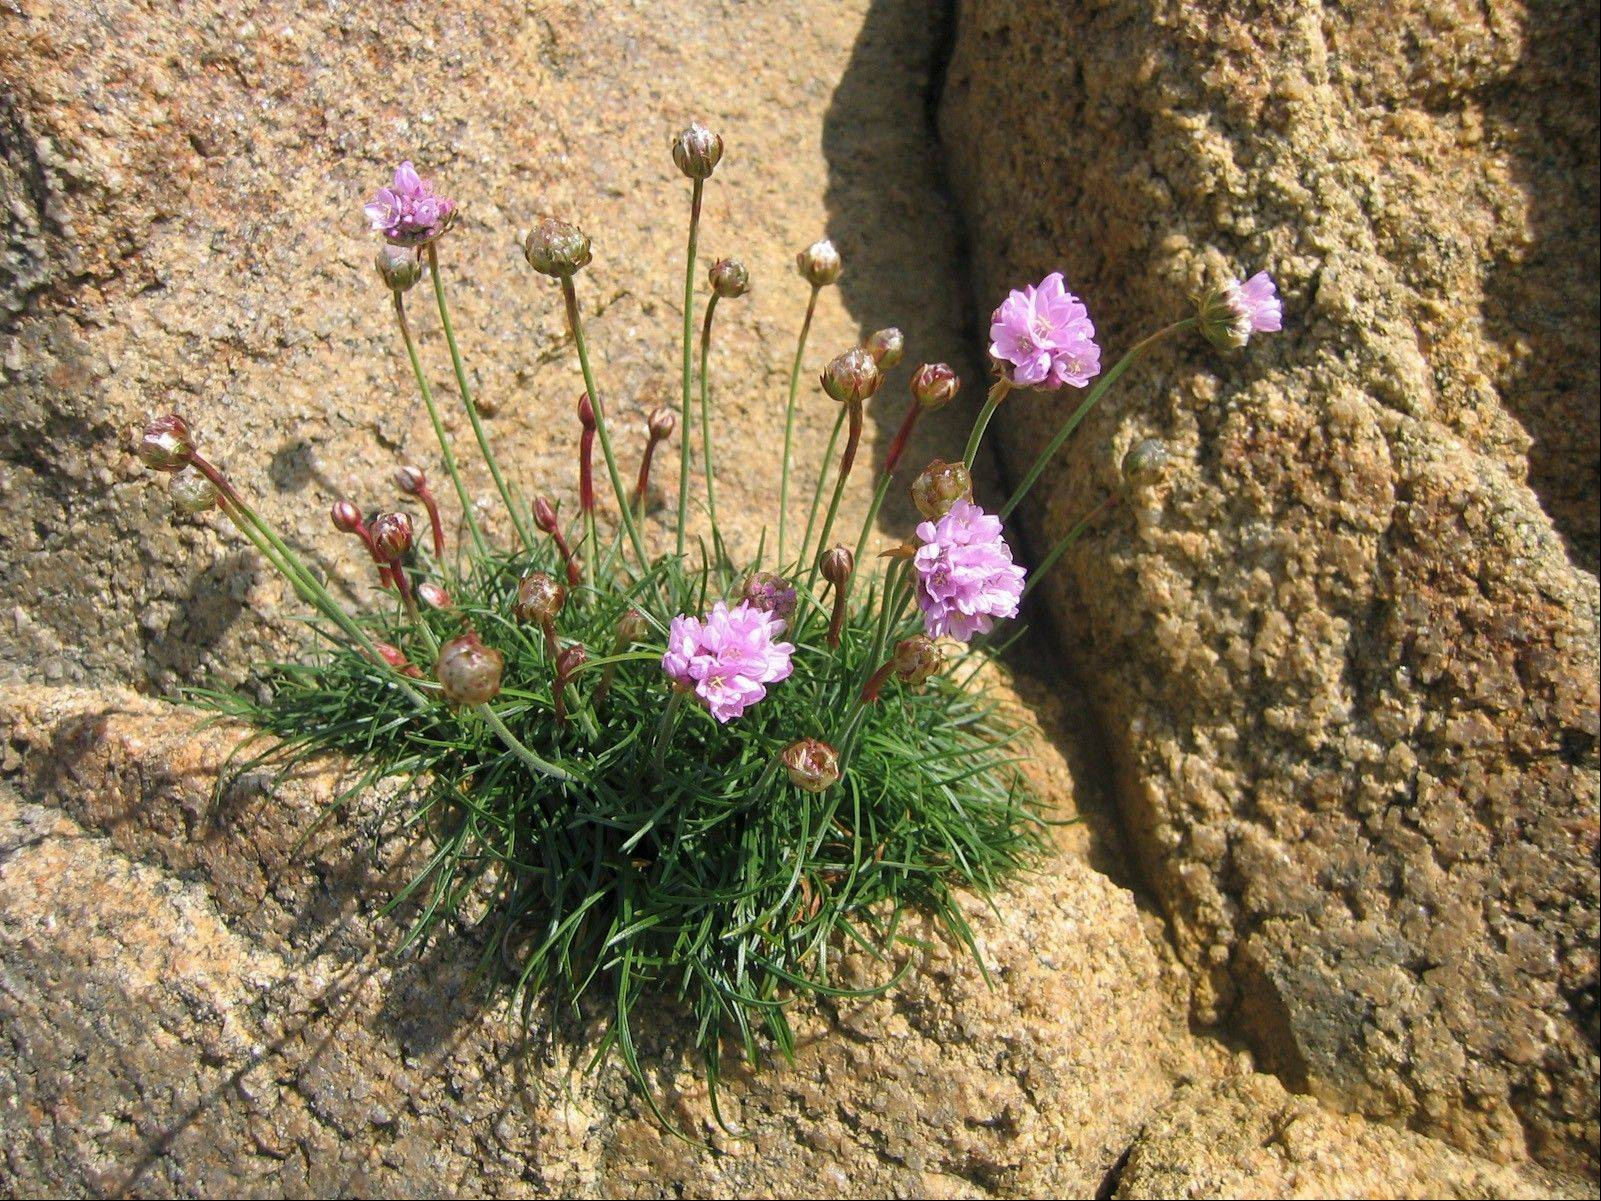 This species of thrift is in its natural habitat on the cliffs of northern France.